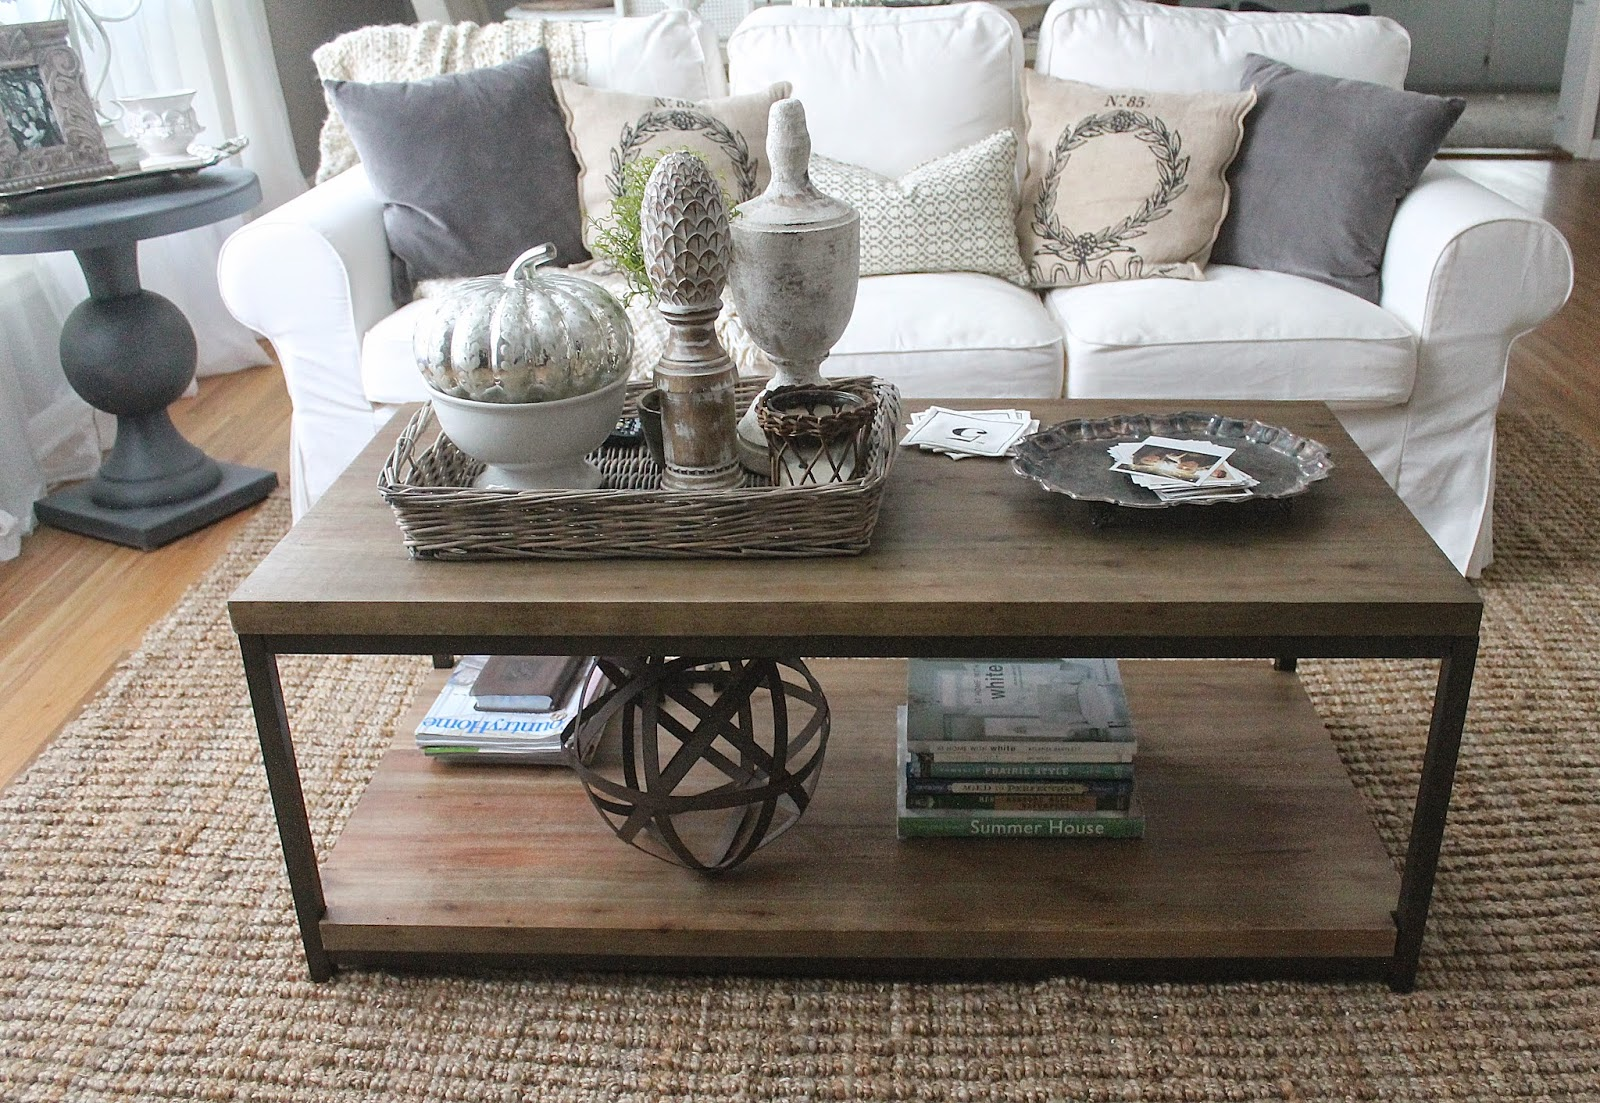 tips for perfect coffee table styling belivindesign img accents ideas rustic decor with industrial touch sitting chairs living room small metal legs adjustable bedside nightstand